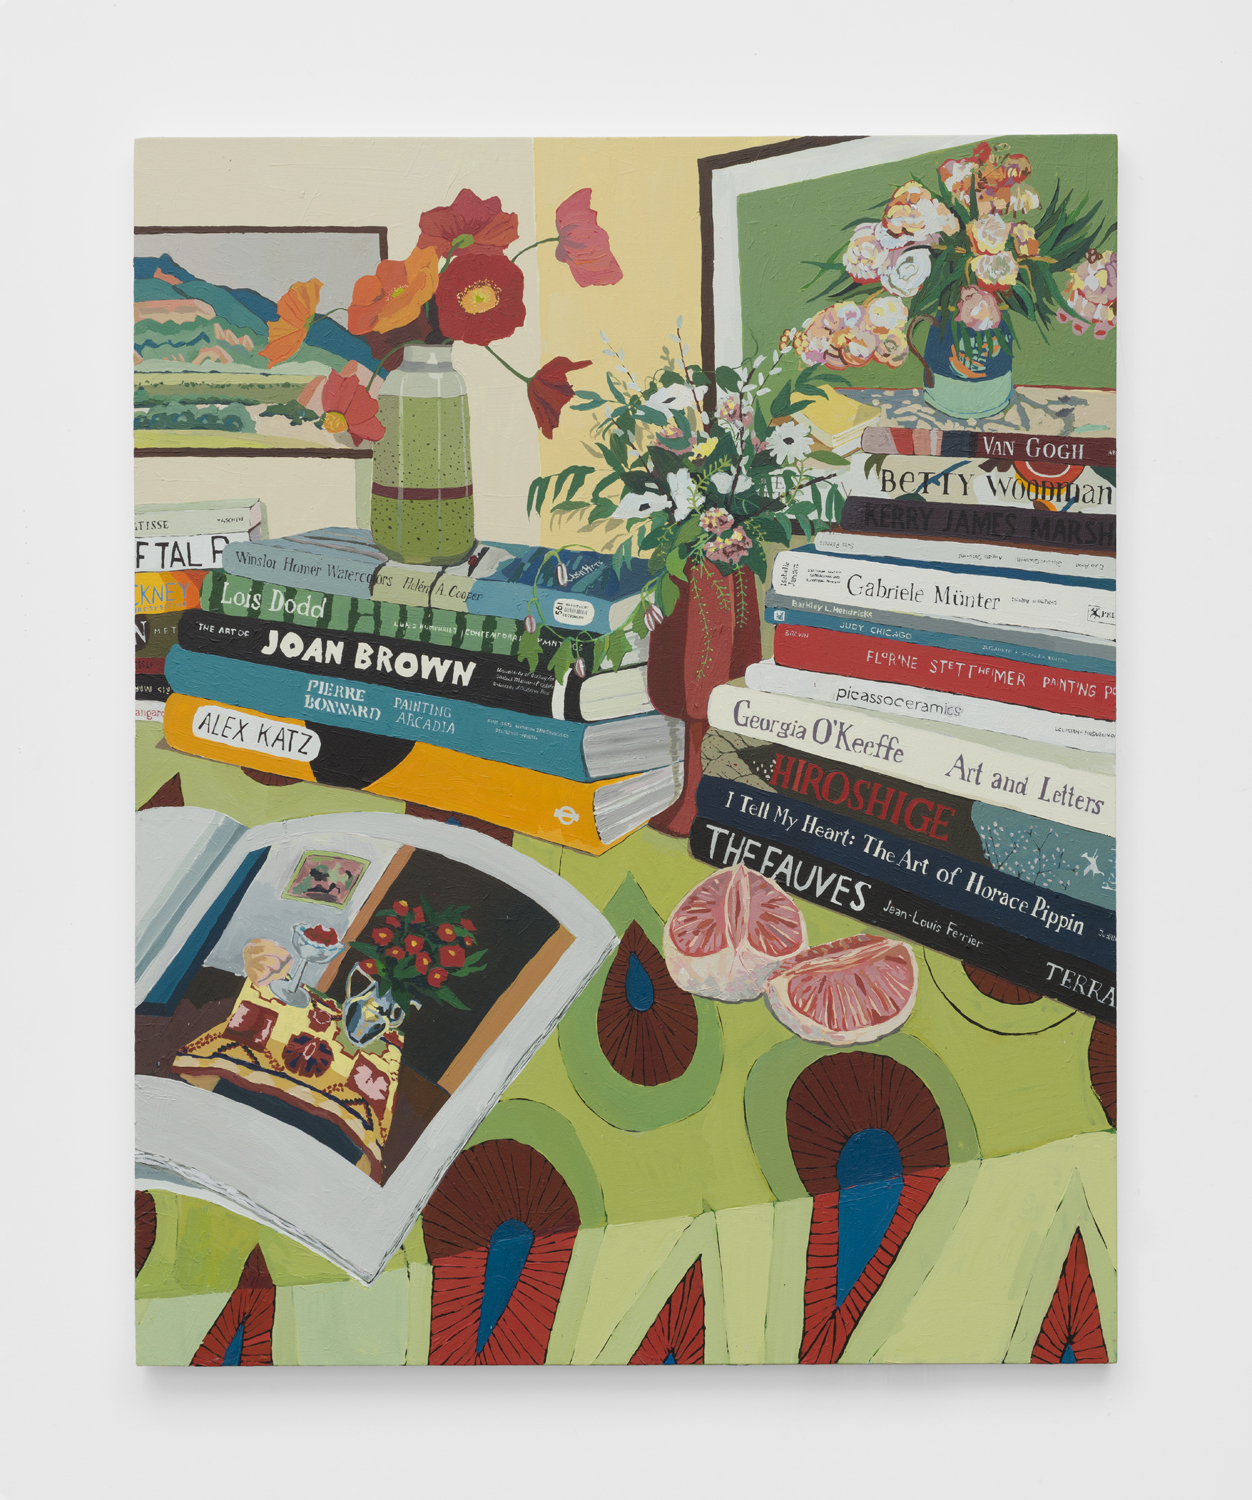 Tables, Flowers, and Books   2019  Acrylic on canvas  60 x 48 inches